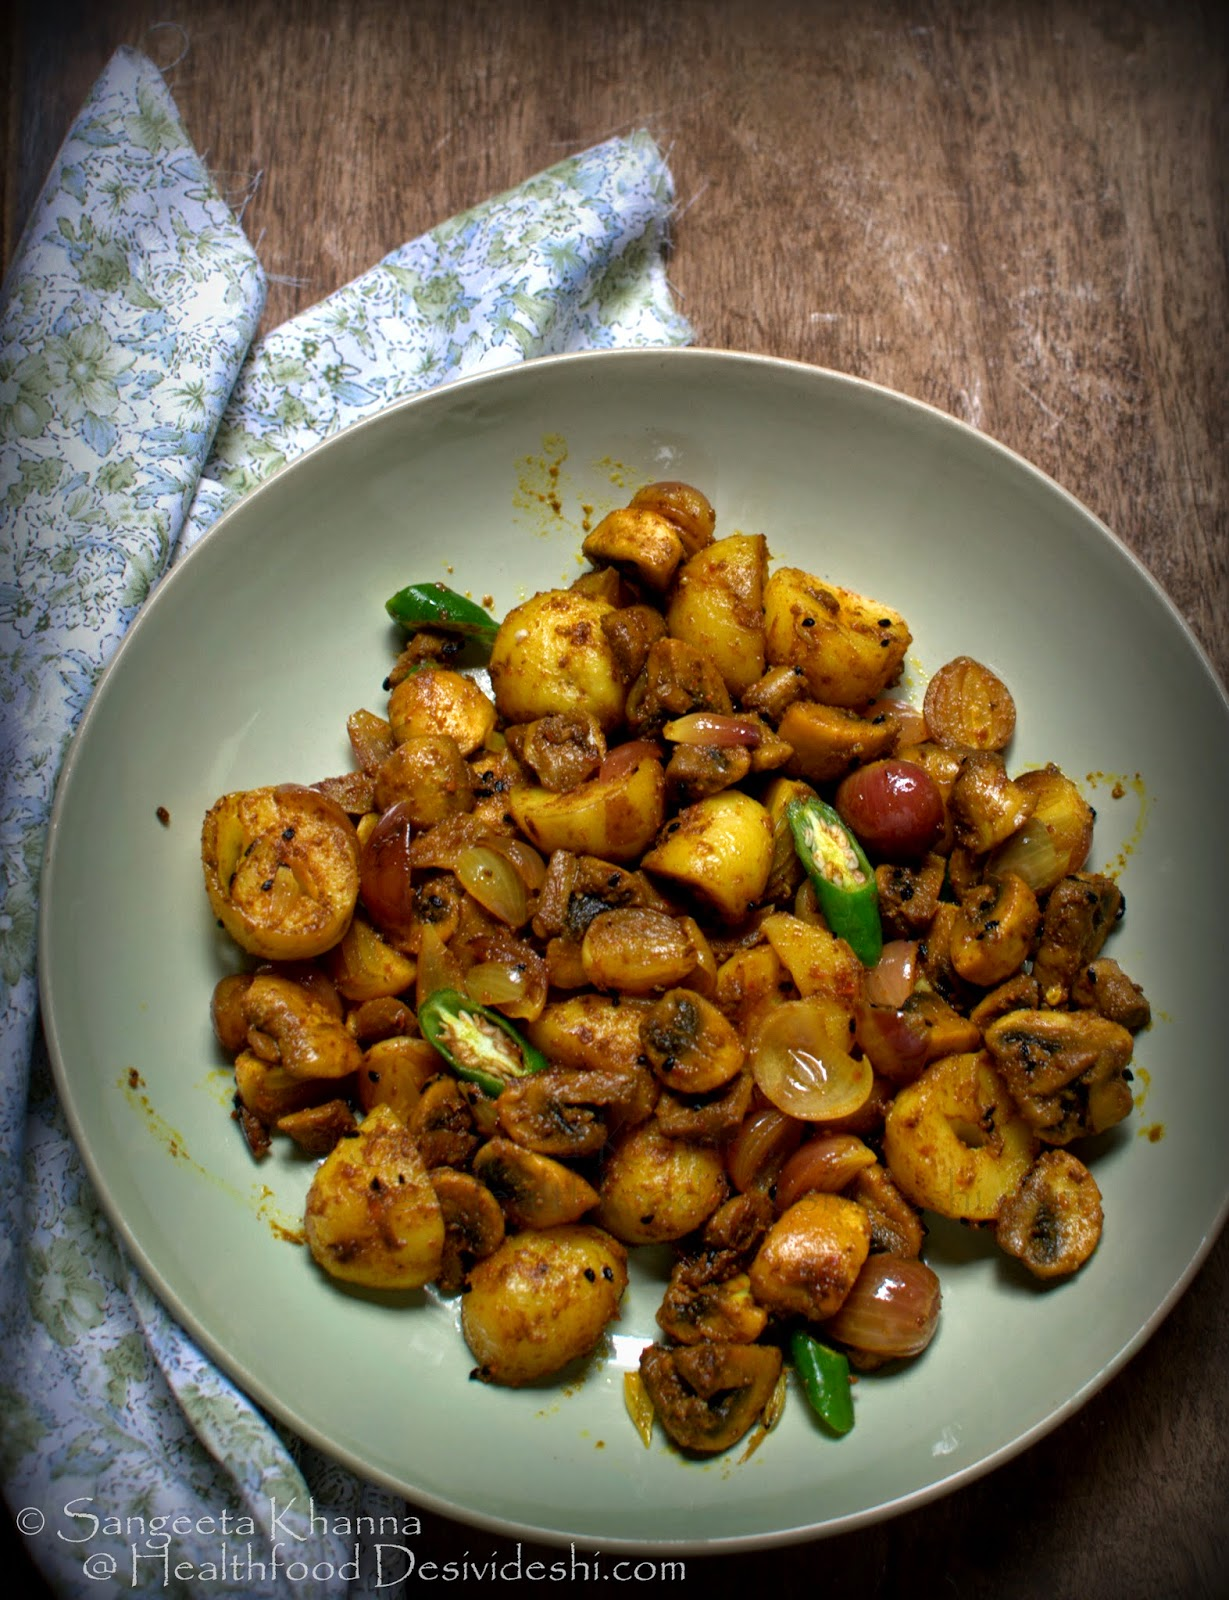 everyday subzi : achari mushroom alu | mushrooms, baby potatoes and baby onions stir fry in pickling spices